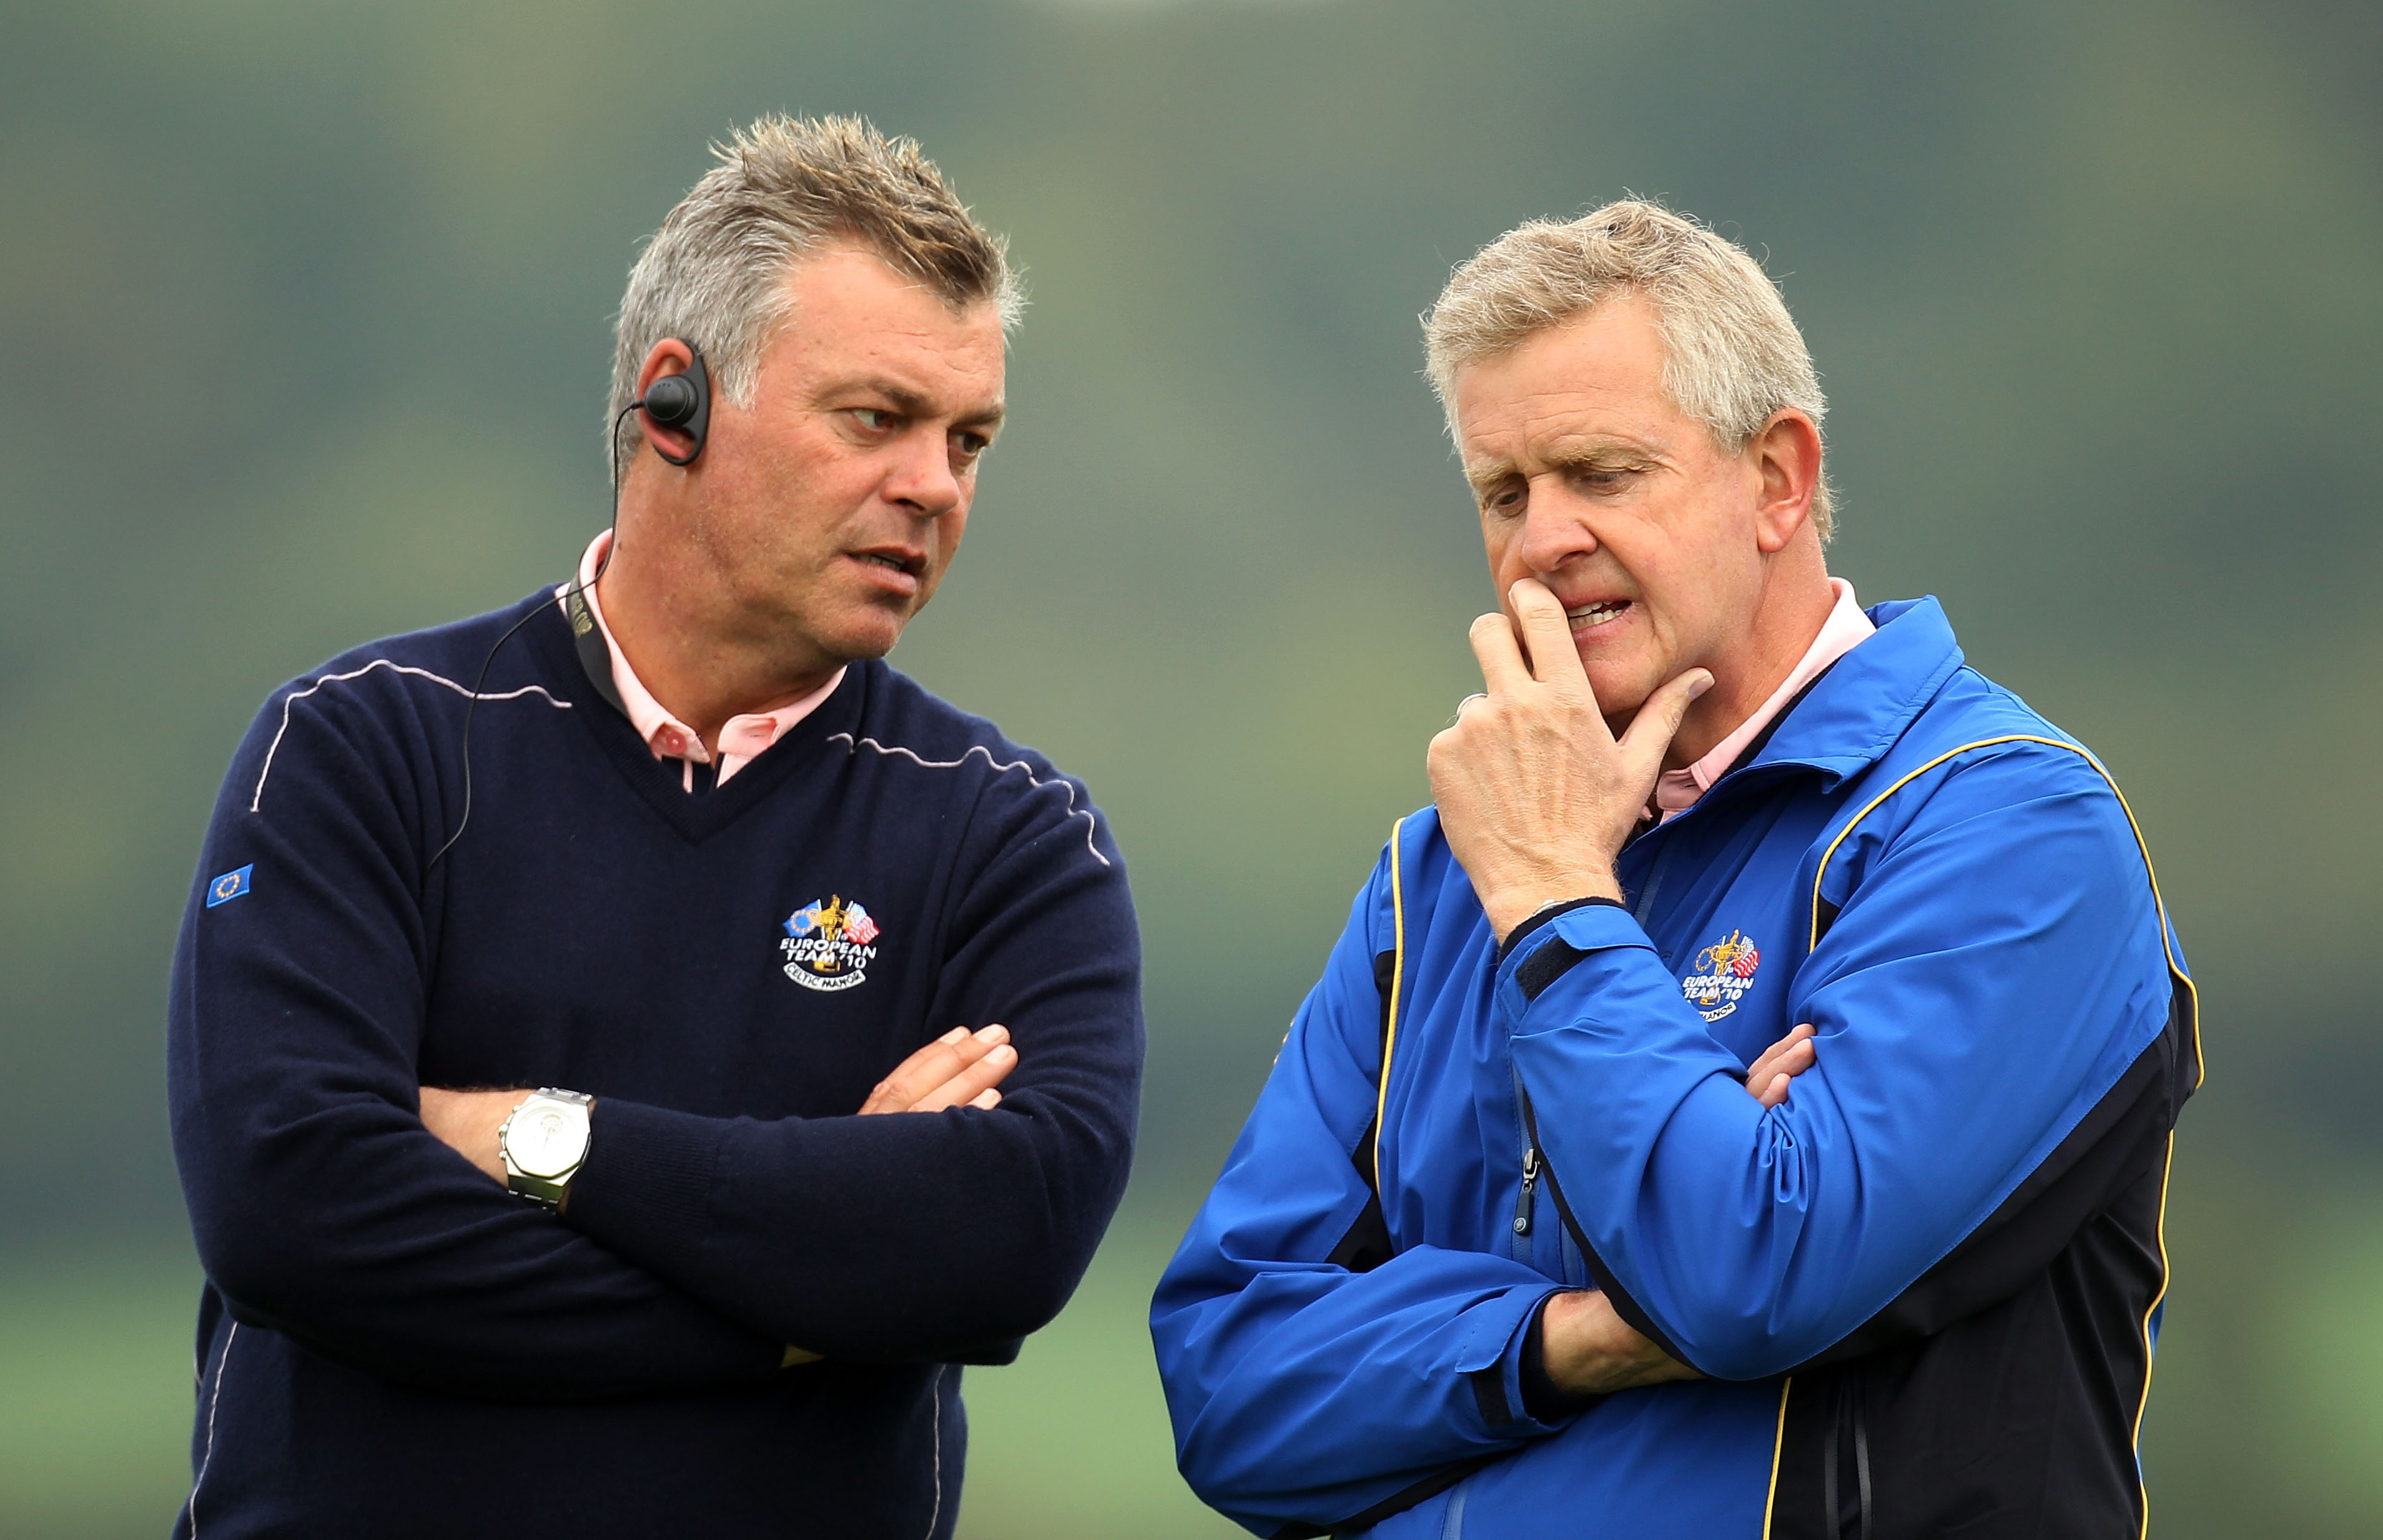 Darren Clarke with Colin Montgomerie at the 2010 Ryder Cup